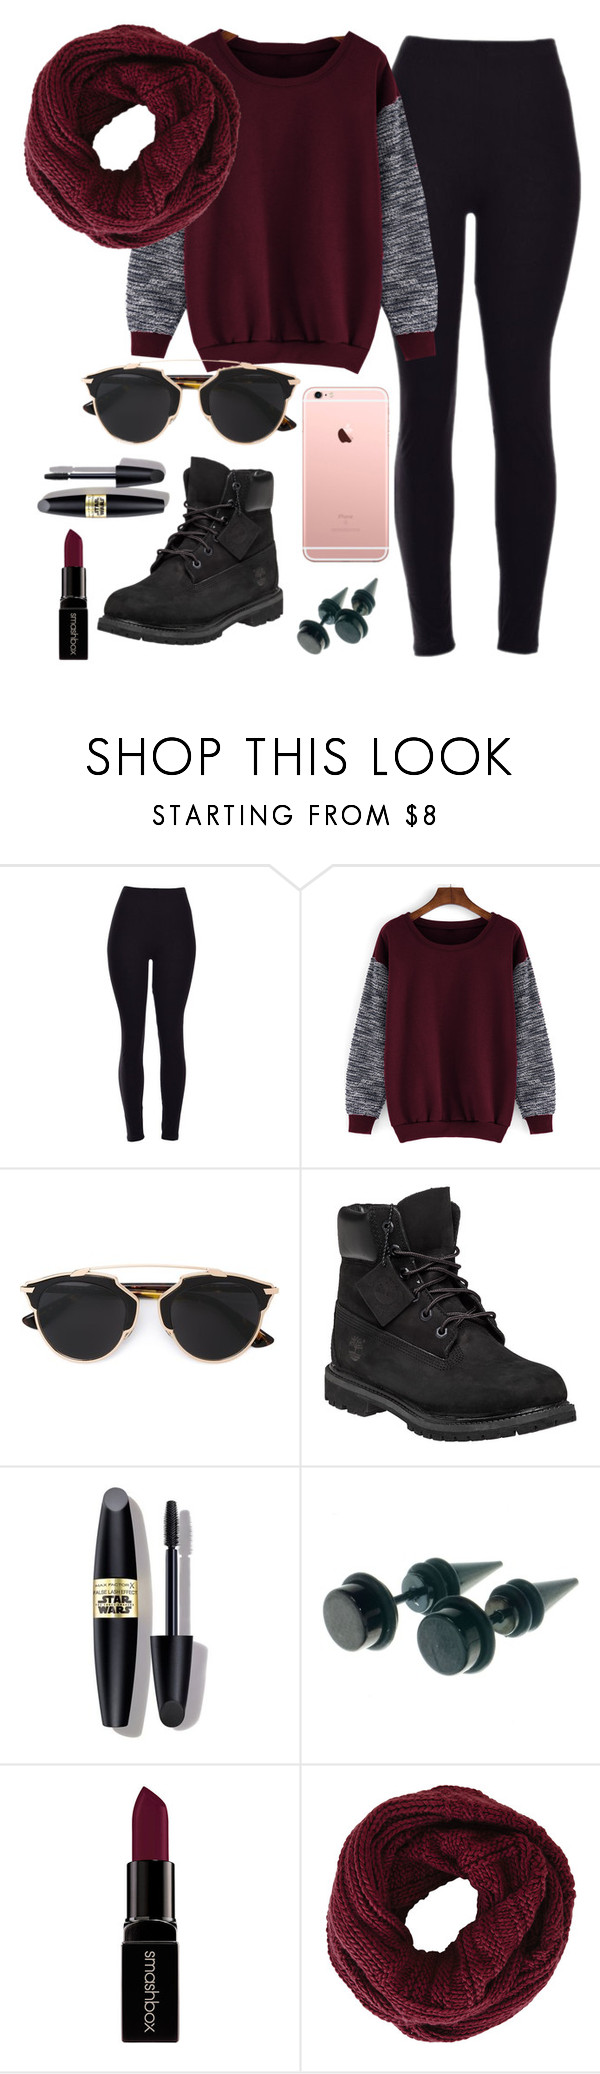 """""""dark"""" by jordangirl2313 ❤ liked on Polyvore featuring Christian Dior, Timberland, Max Factor, Smashbox, BCBGMAXAZRIA, women's clothing, women's fashion, women, female and woman"""